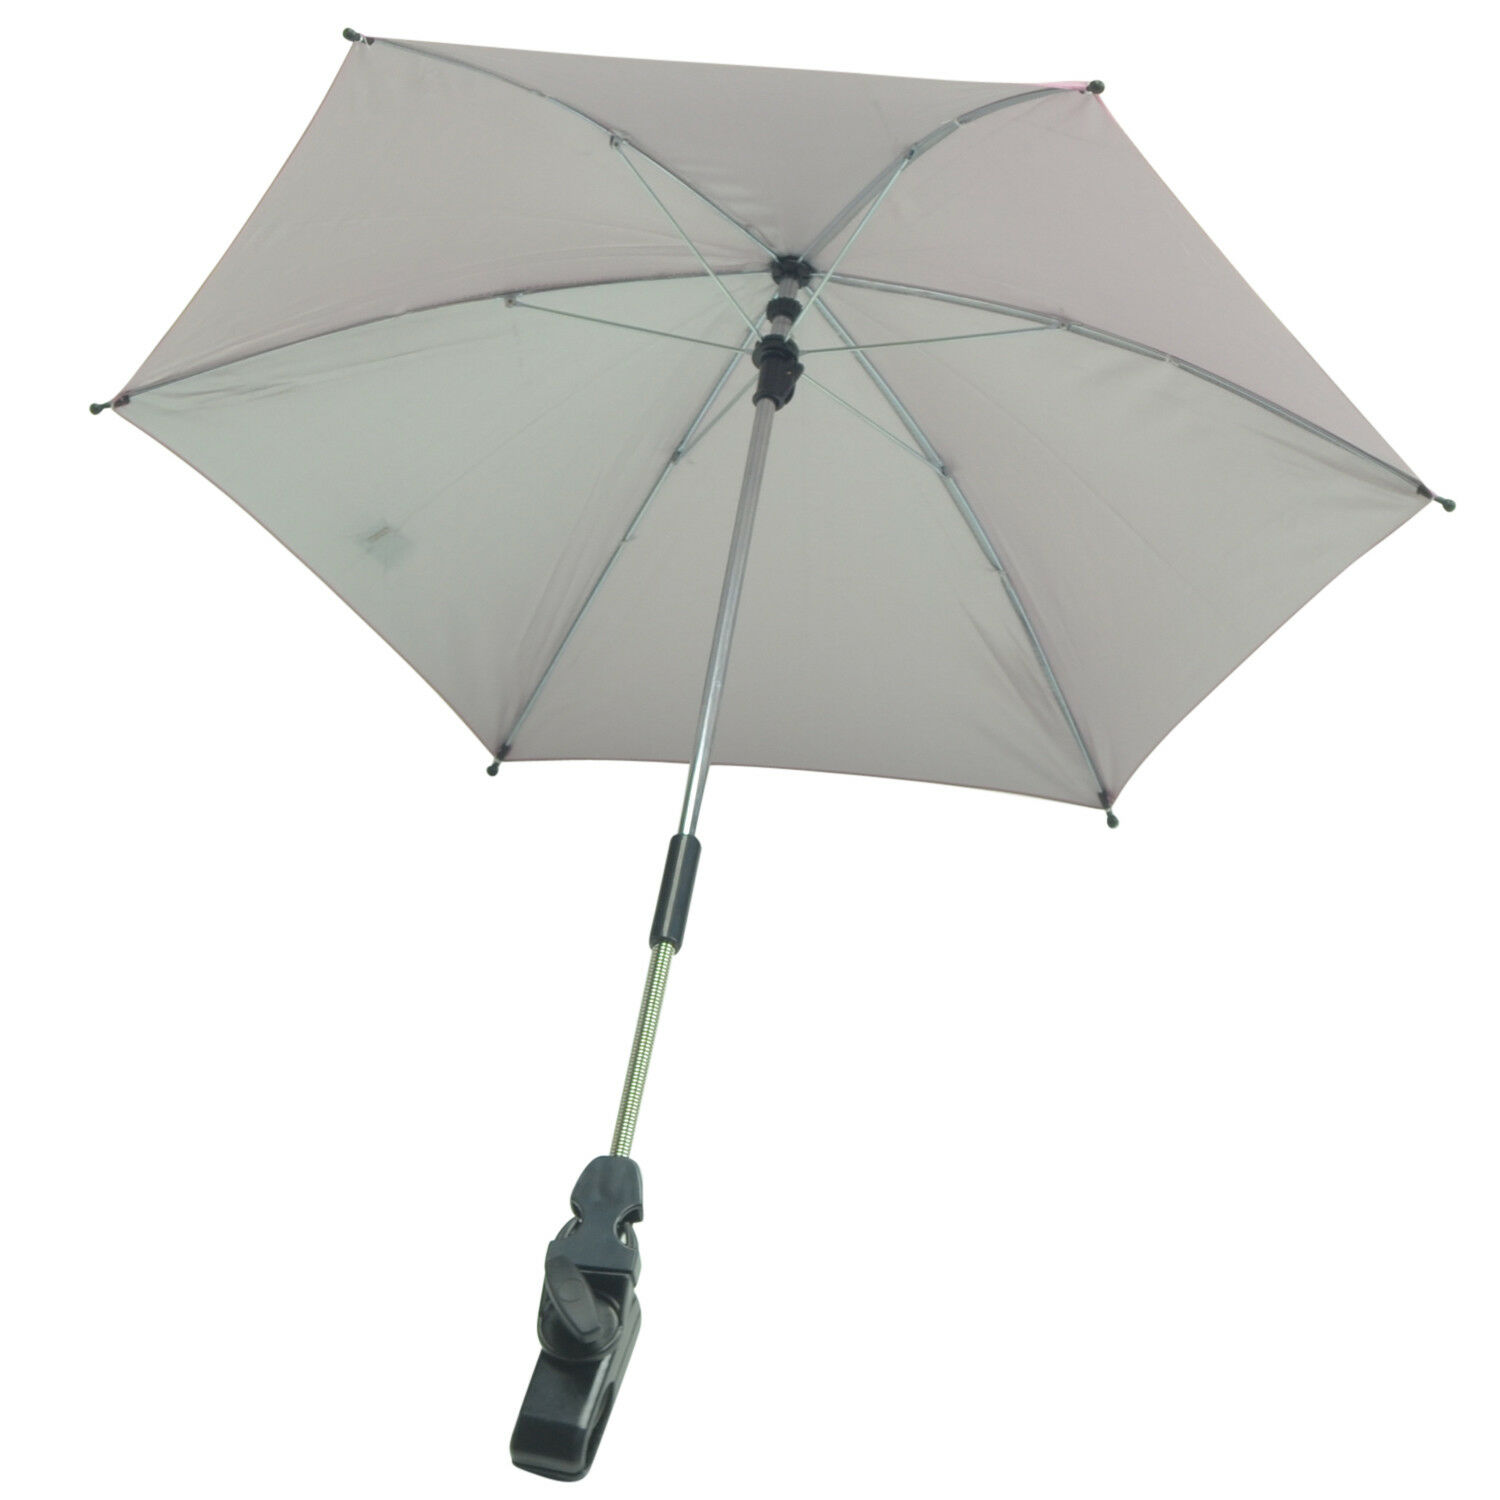 Baby Parasol Compatible With Bugaboo Ebay